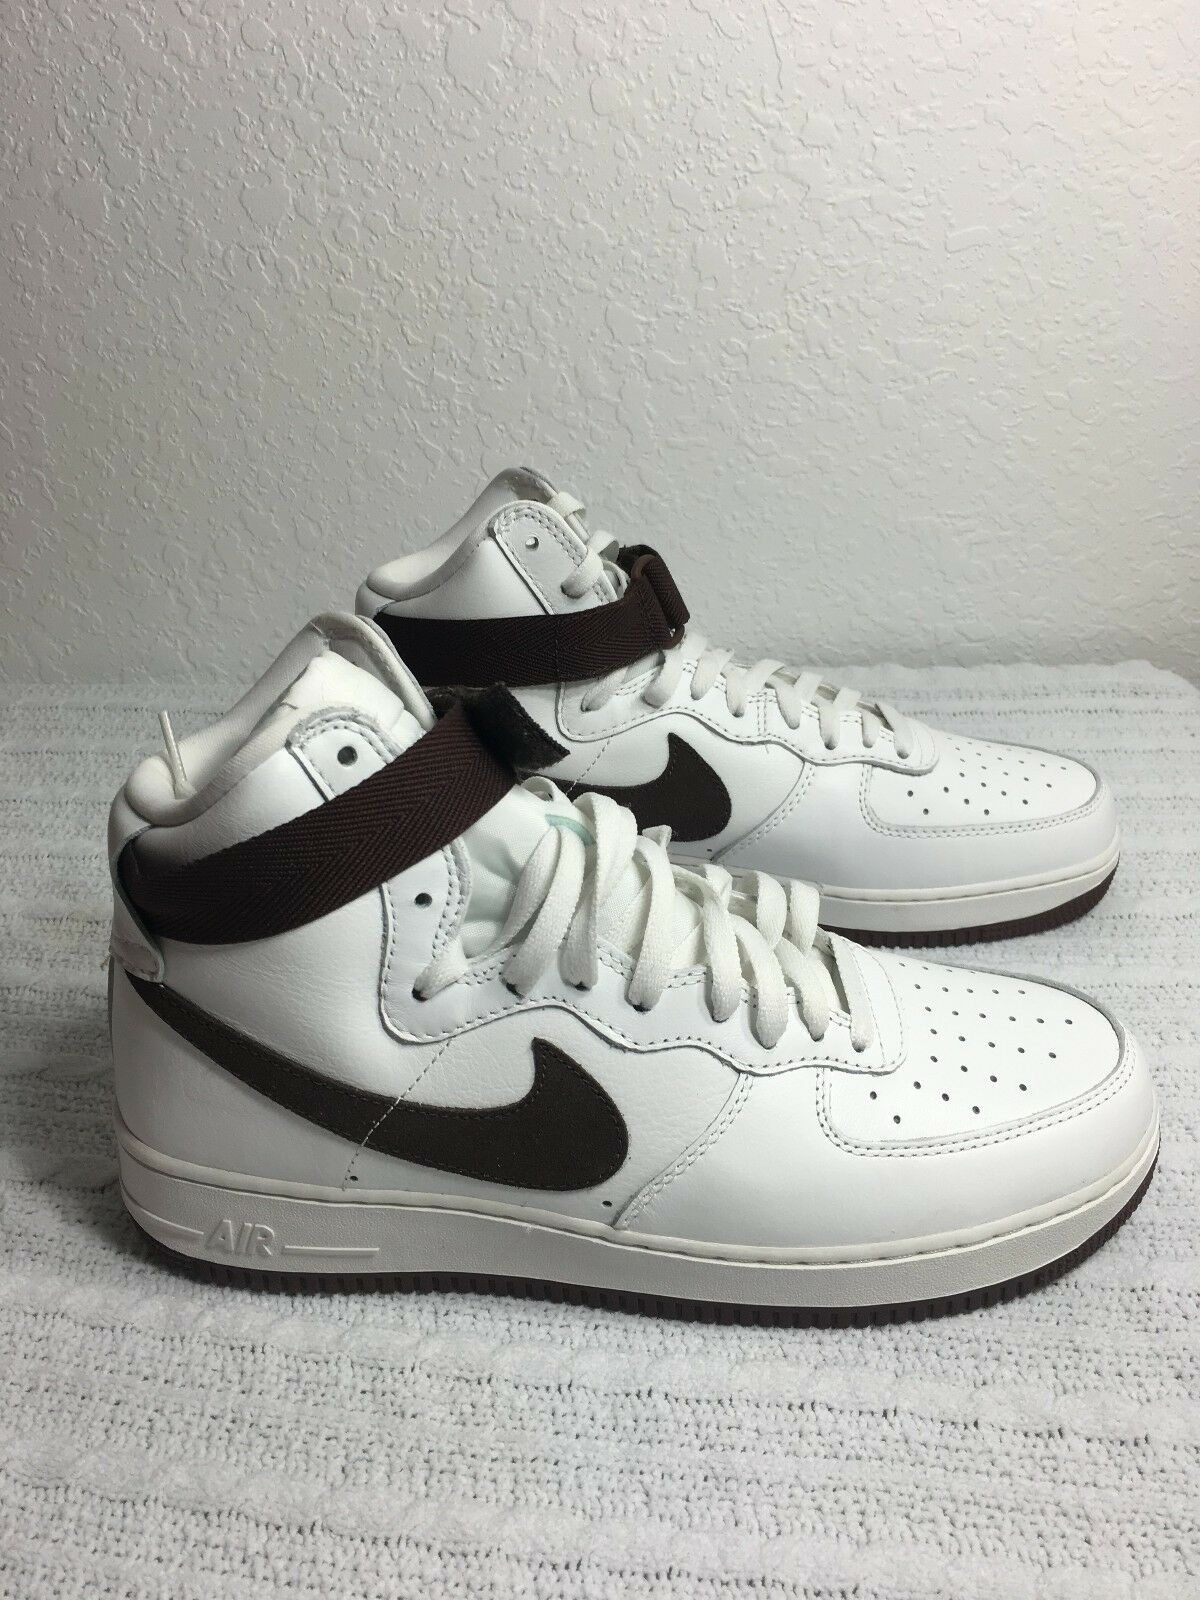 790082586b0f Nike Basketball Shoes Air Force 1 Hi Retro QS Mens US Size 11 White ...